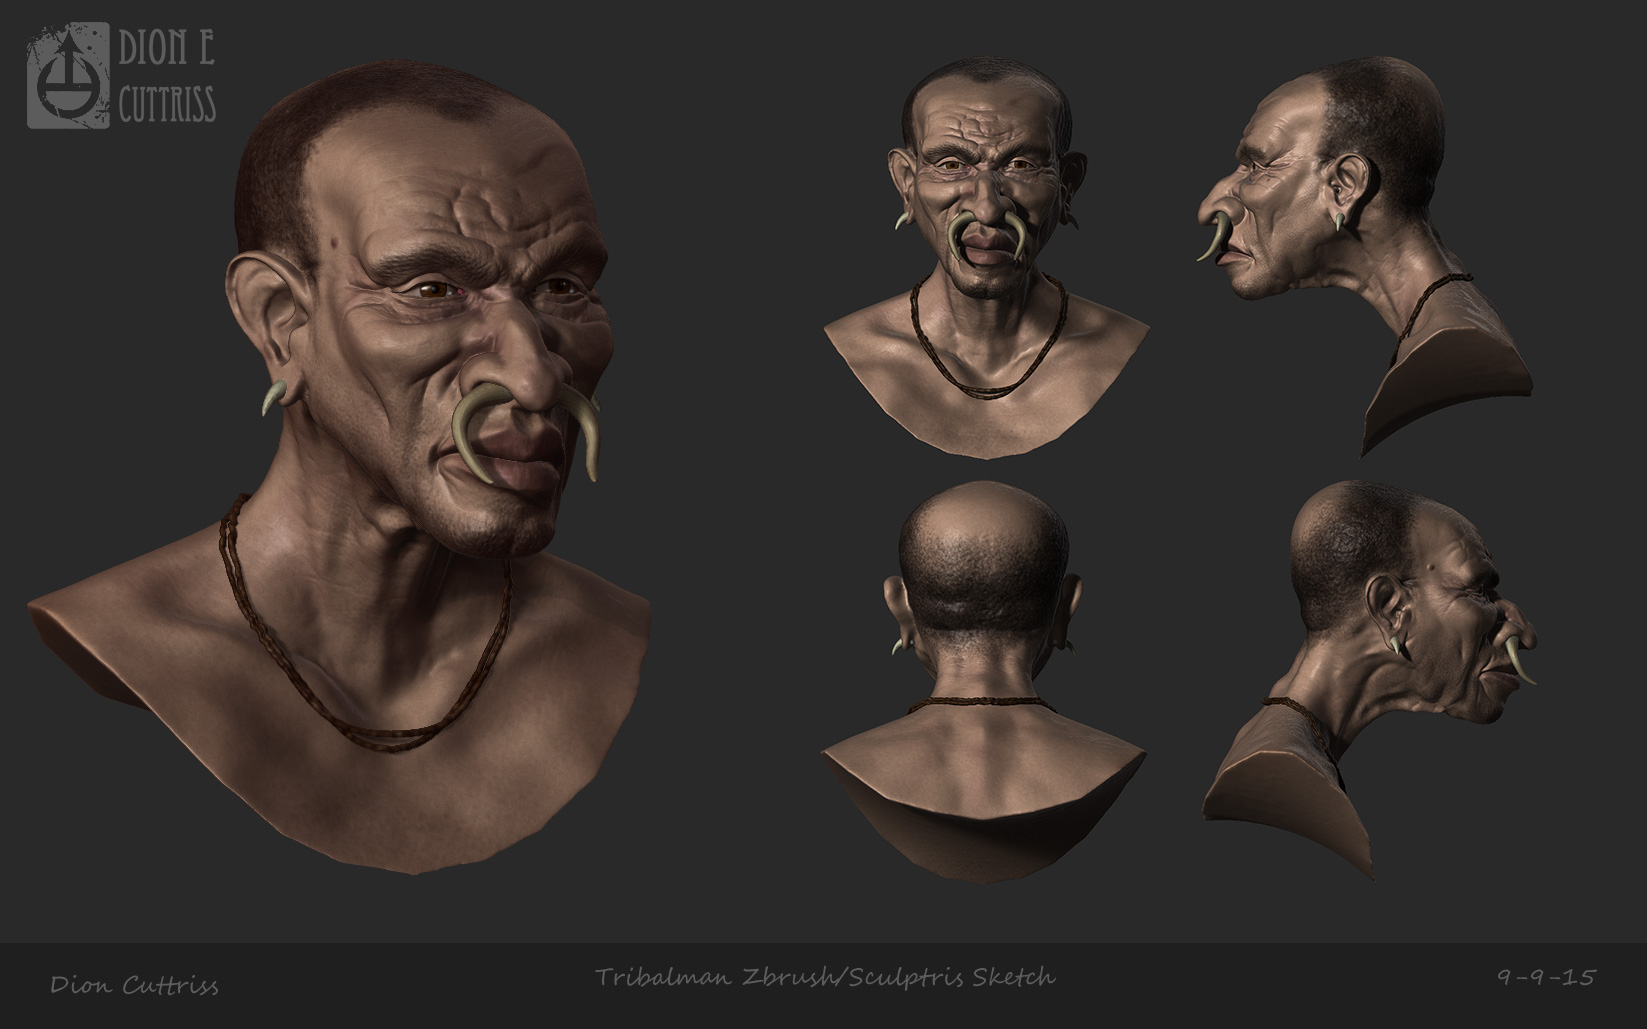 Tribalman Caricature - Zbrush/Sculptris Sketch by thadeemon